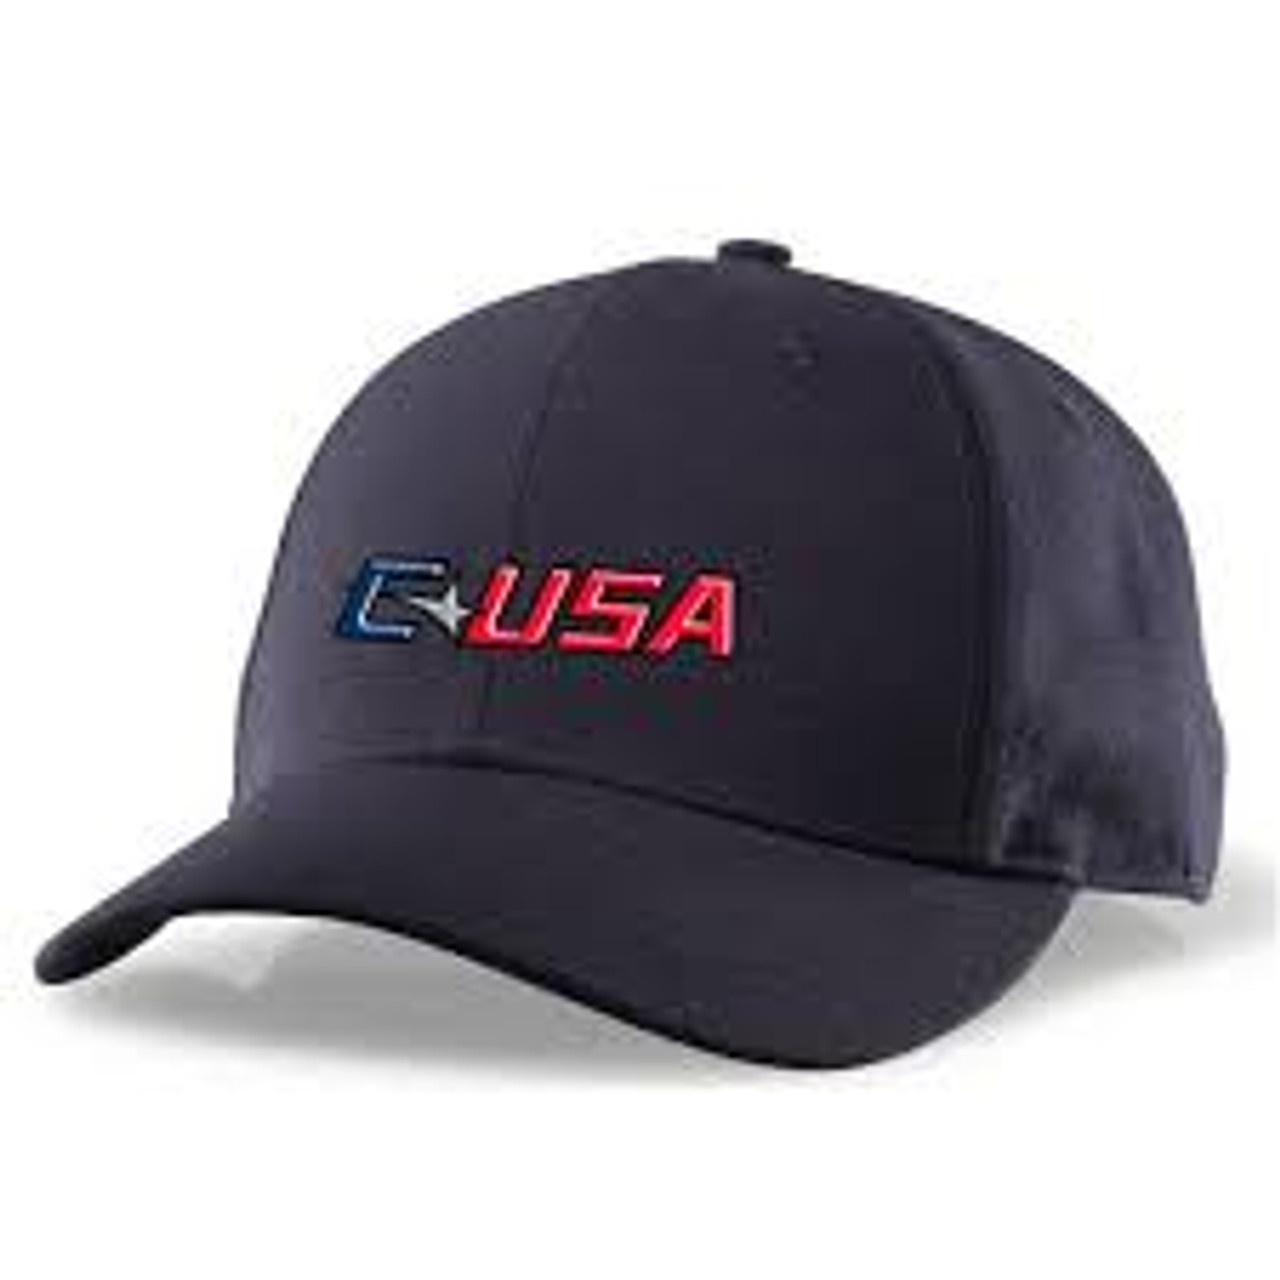 Conference USA Softball Navy Fitted Wool 4-stitch Umpire Cap